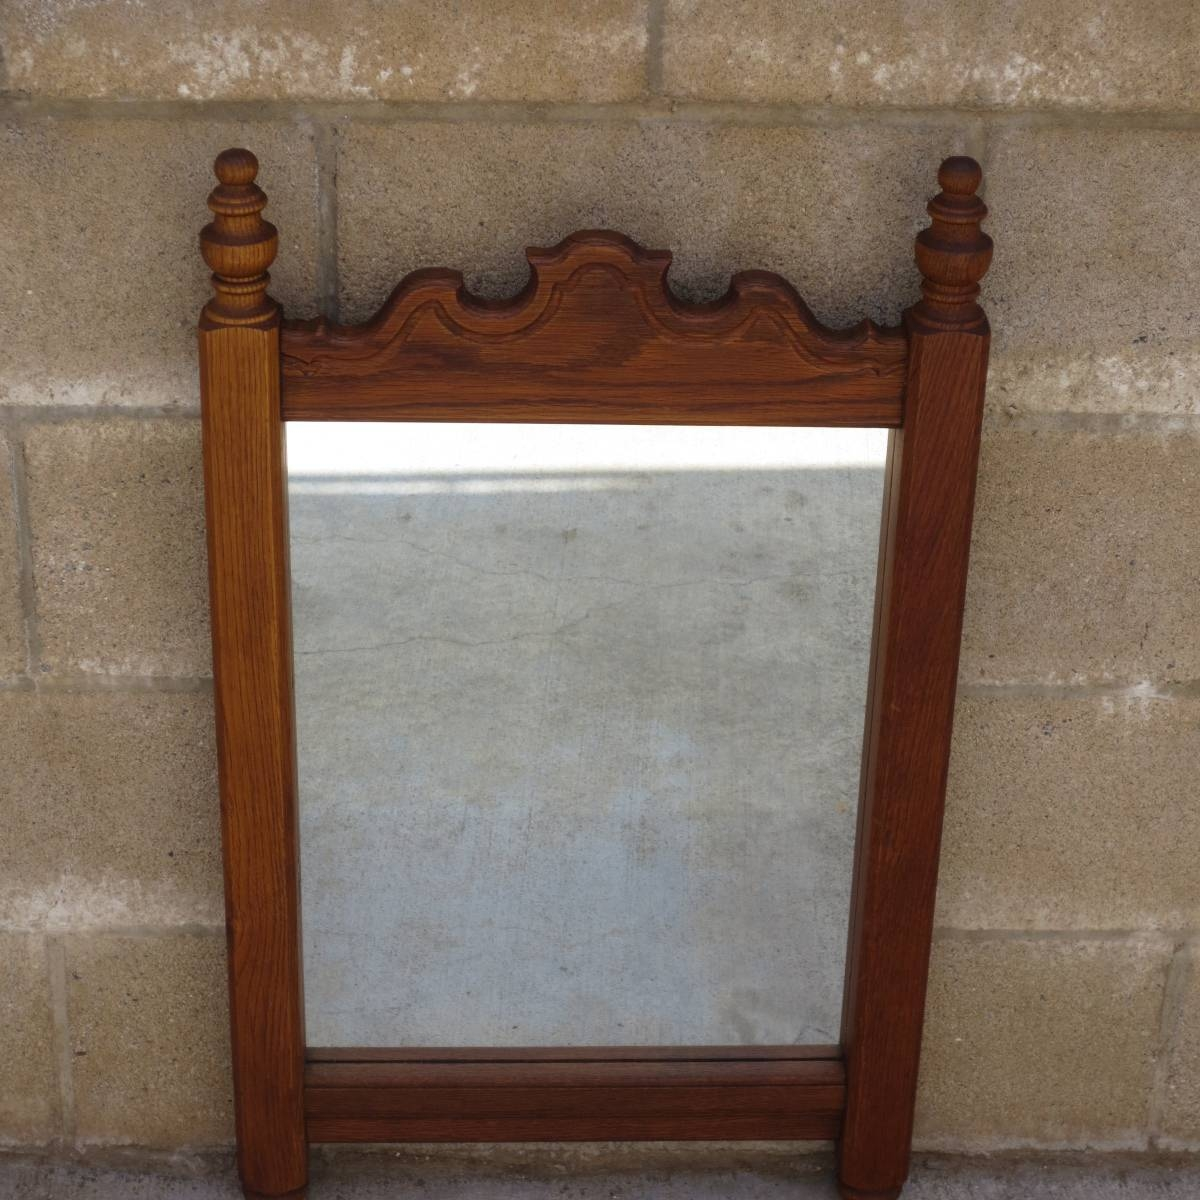 Antique Mirrors, Vintage Mirrors, Antique Wall Mirrors, And French inside Antique Wall Mirrors (Image 4 of 15)